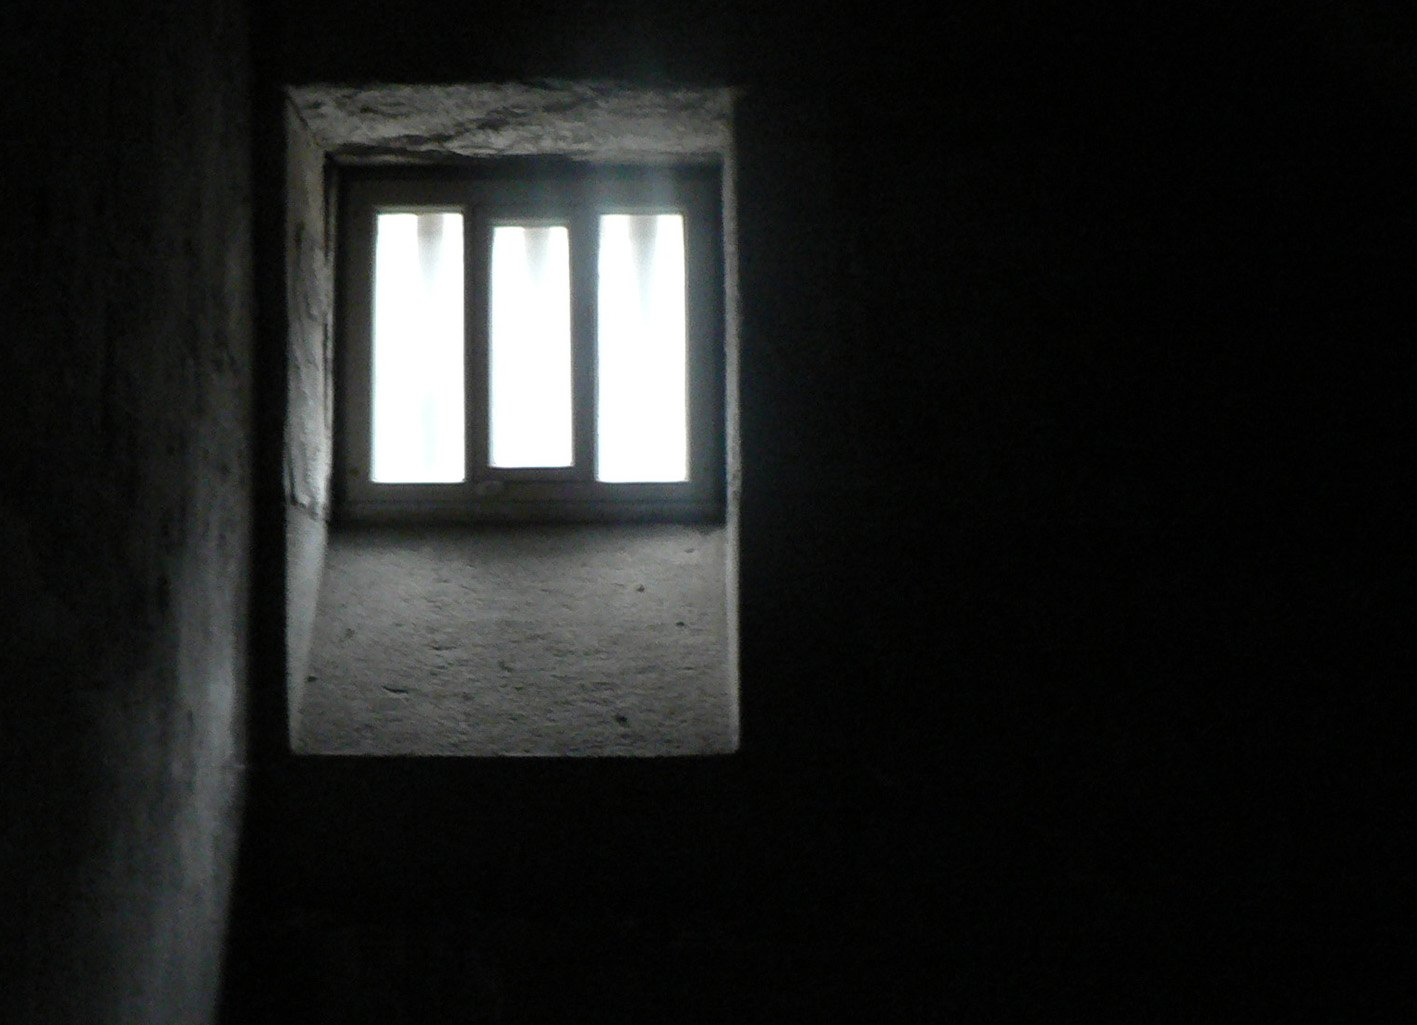 A prison cell window - for generic use